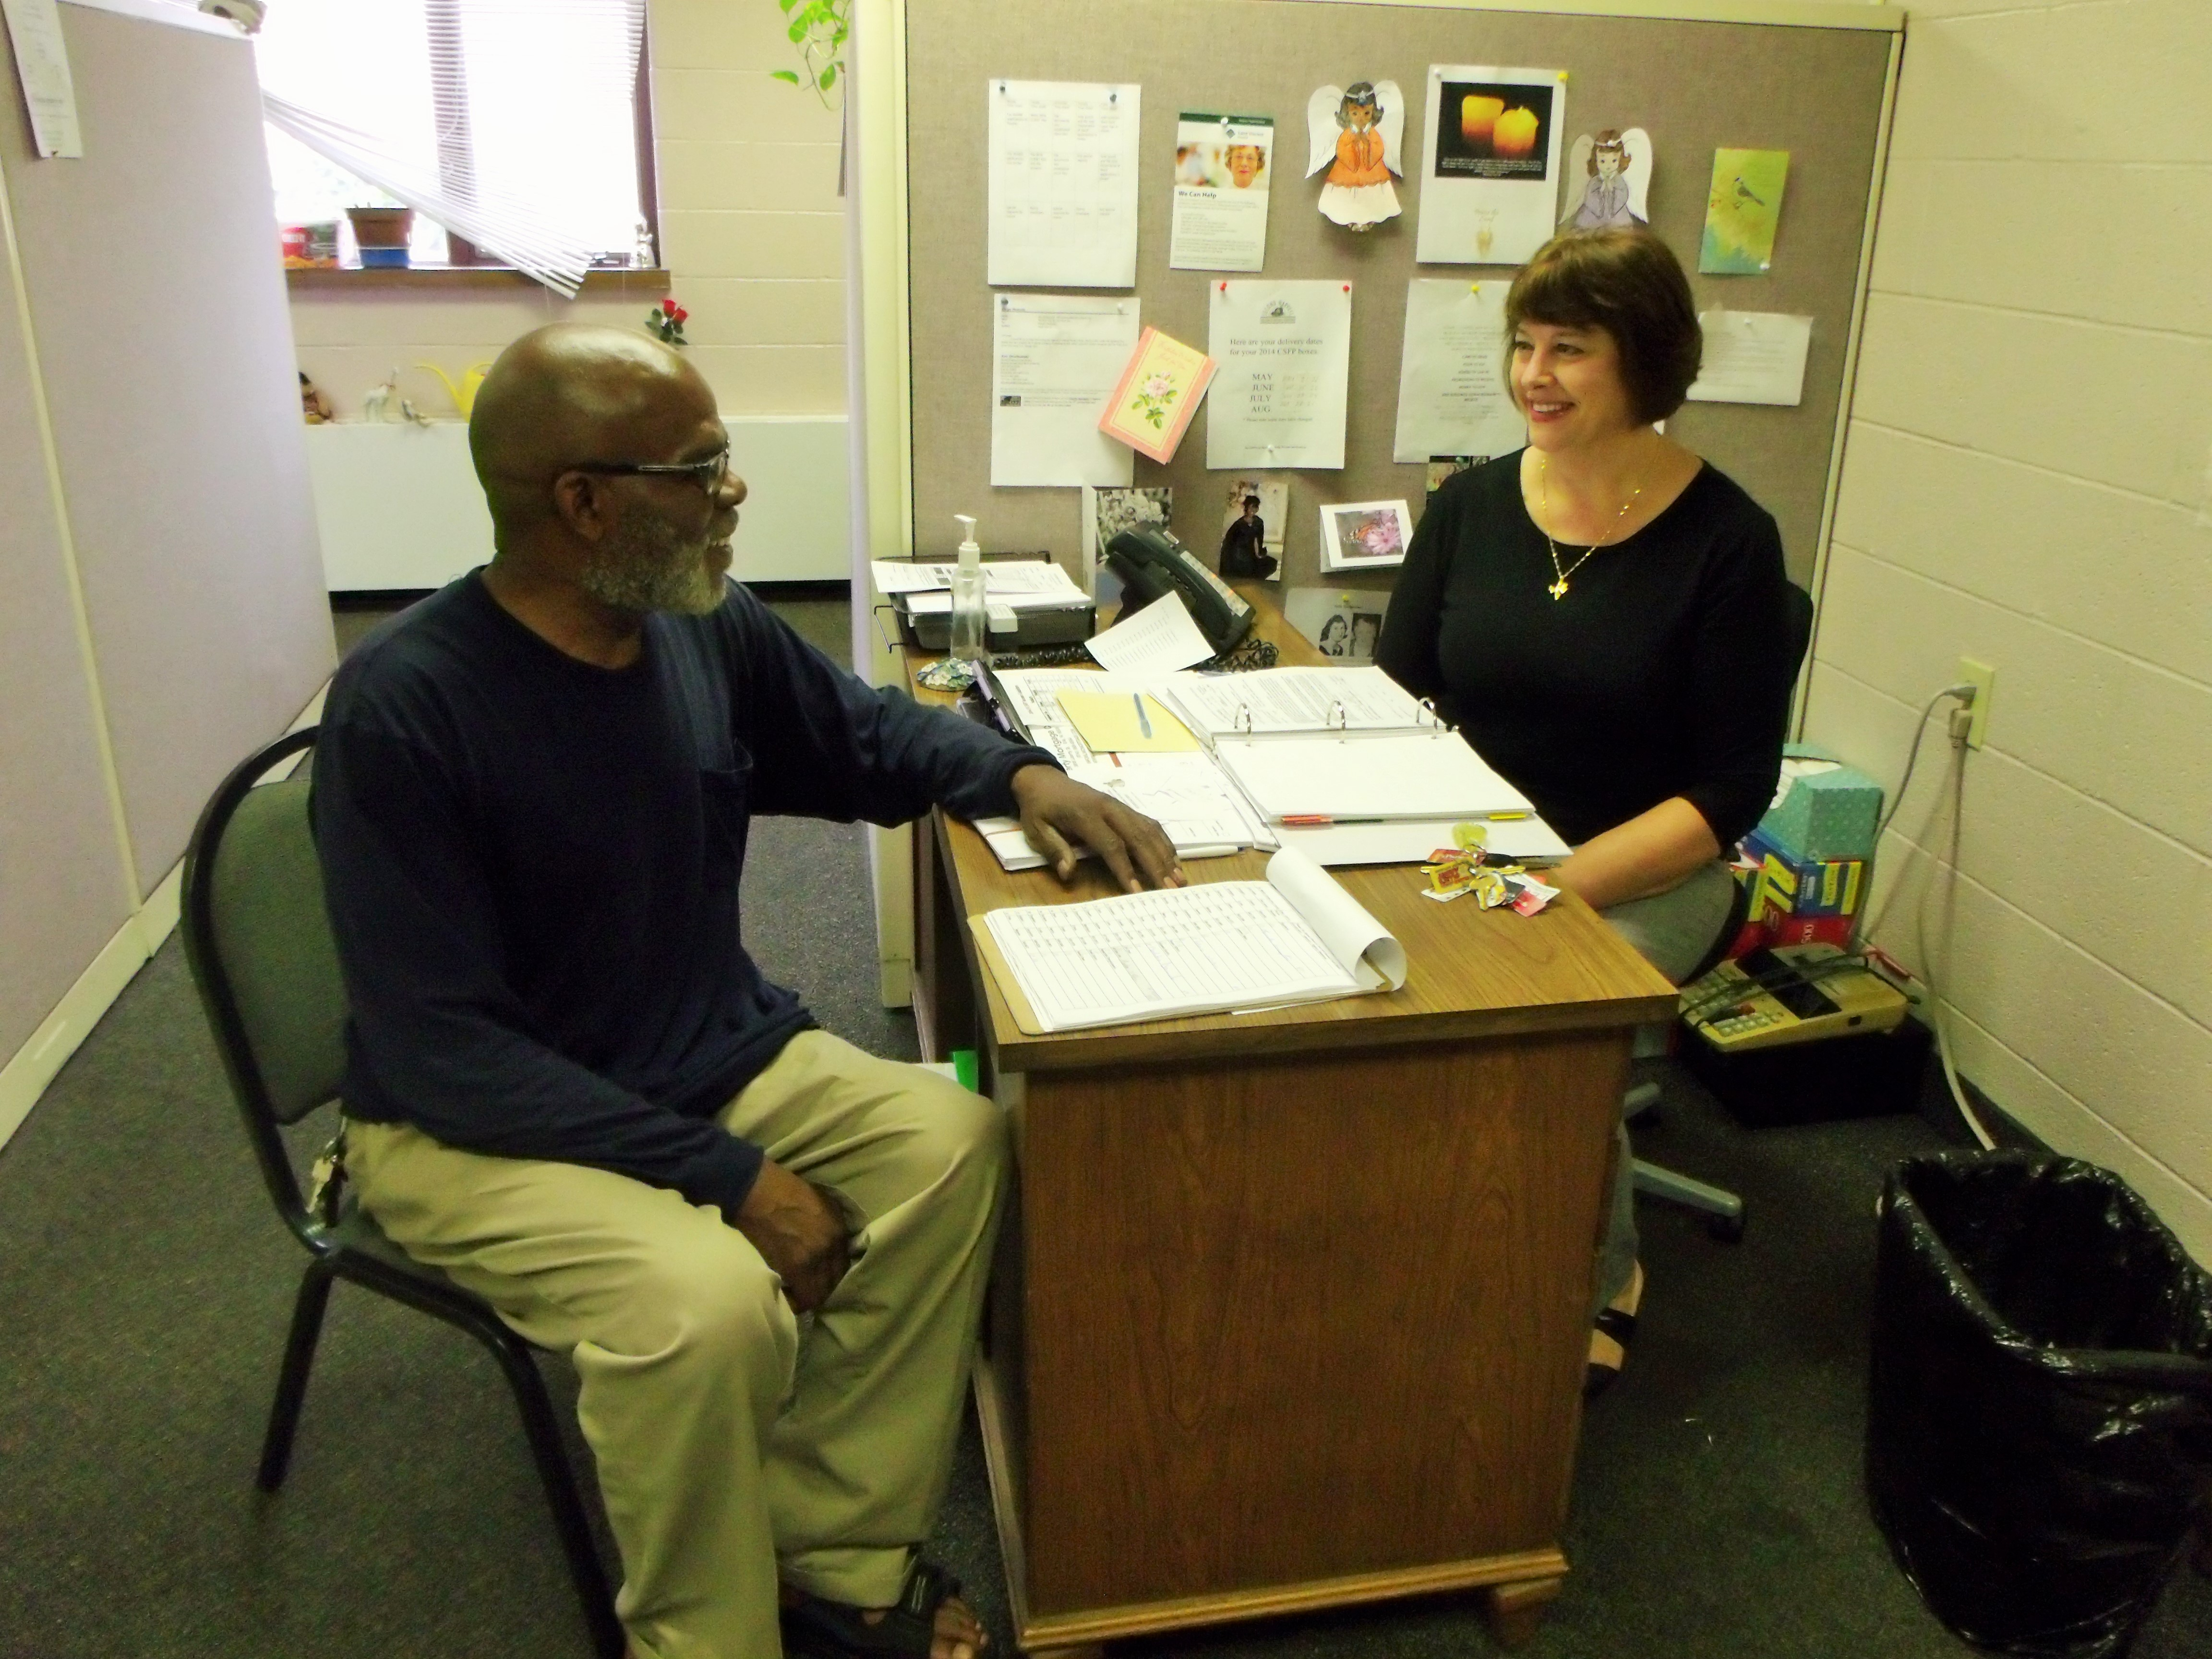 A woman provides counseling to a man as they sit on opposite sides of a desk.